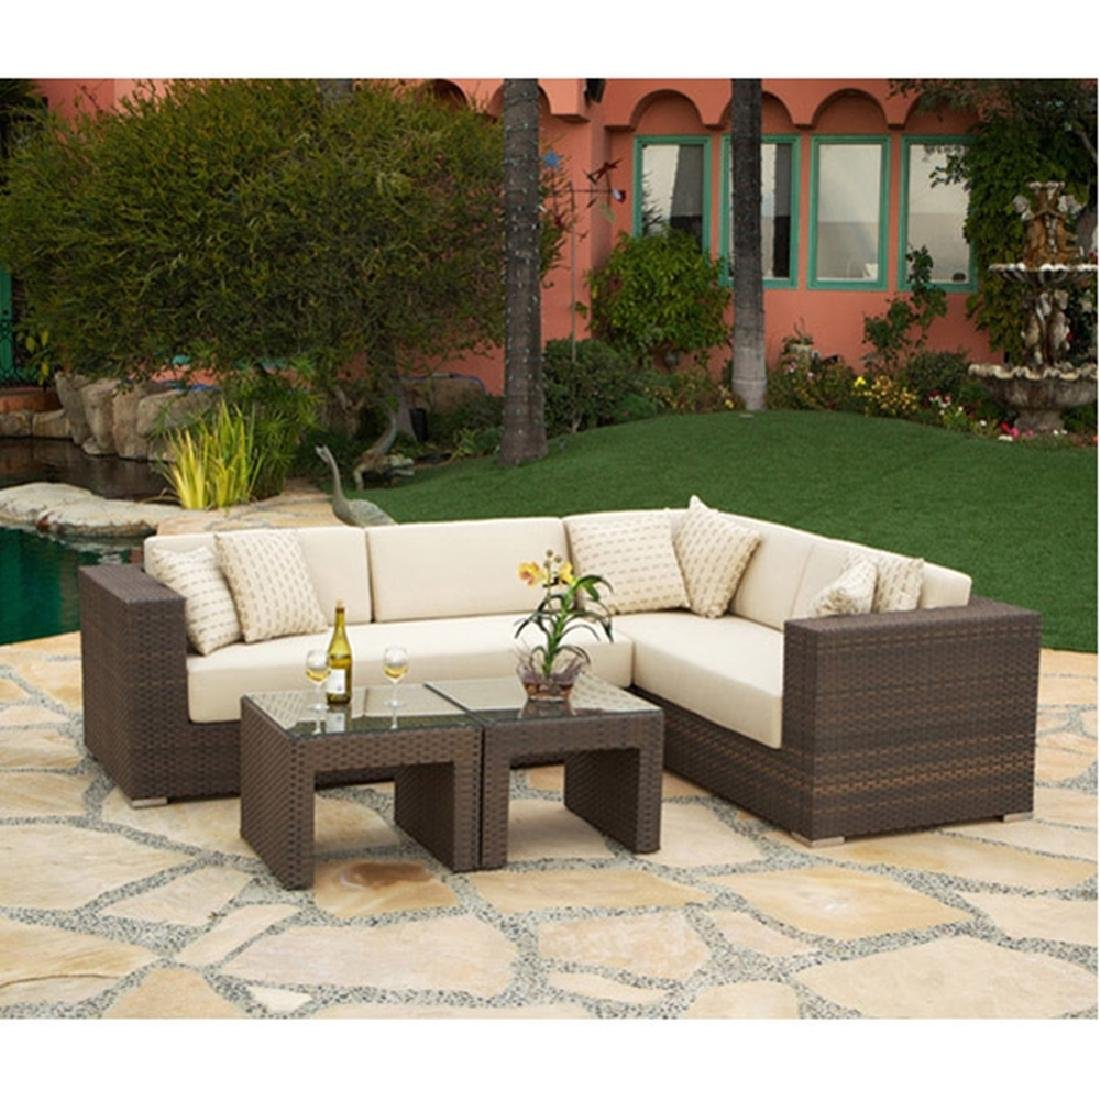 Panorama four Piece Woven Outdoor Sectional Set